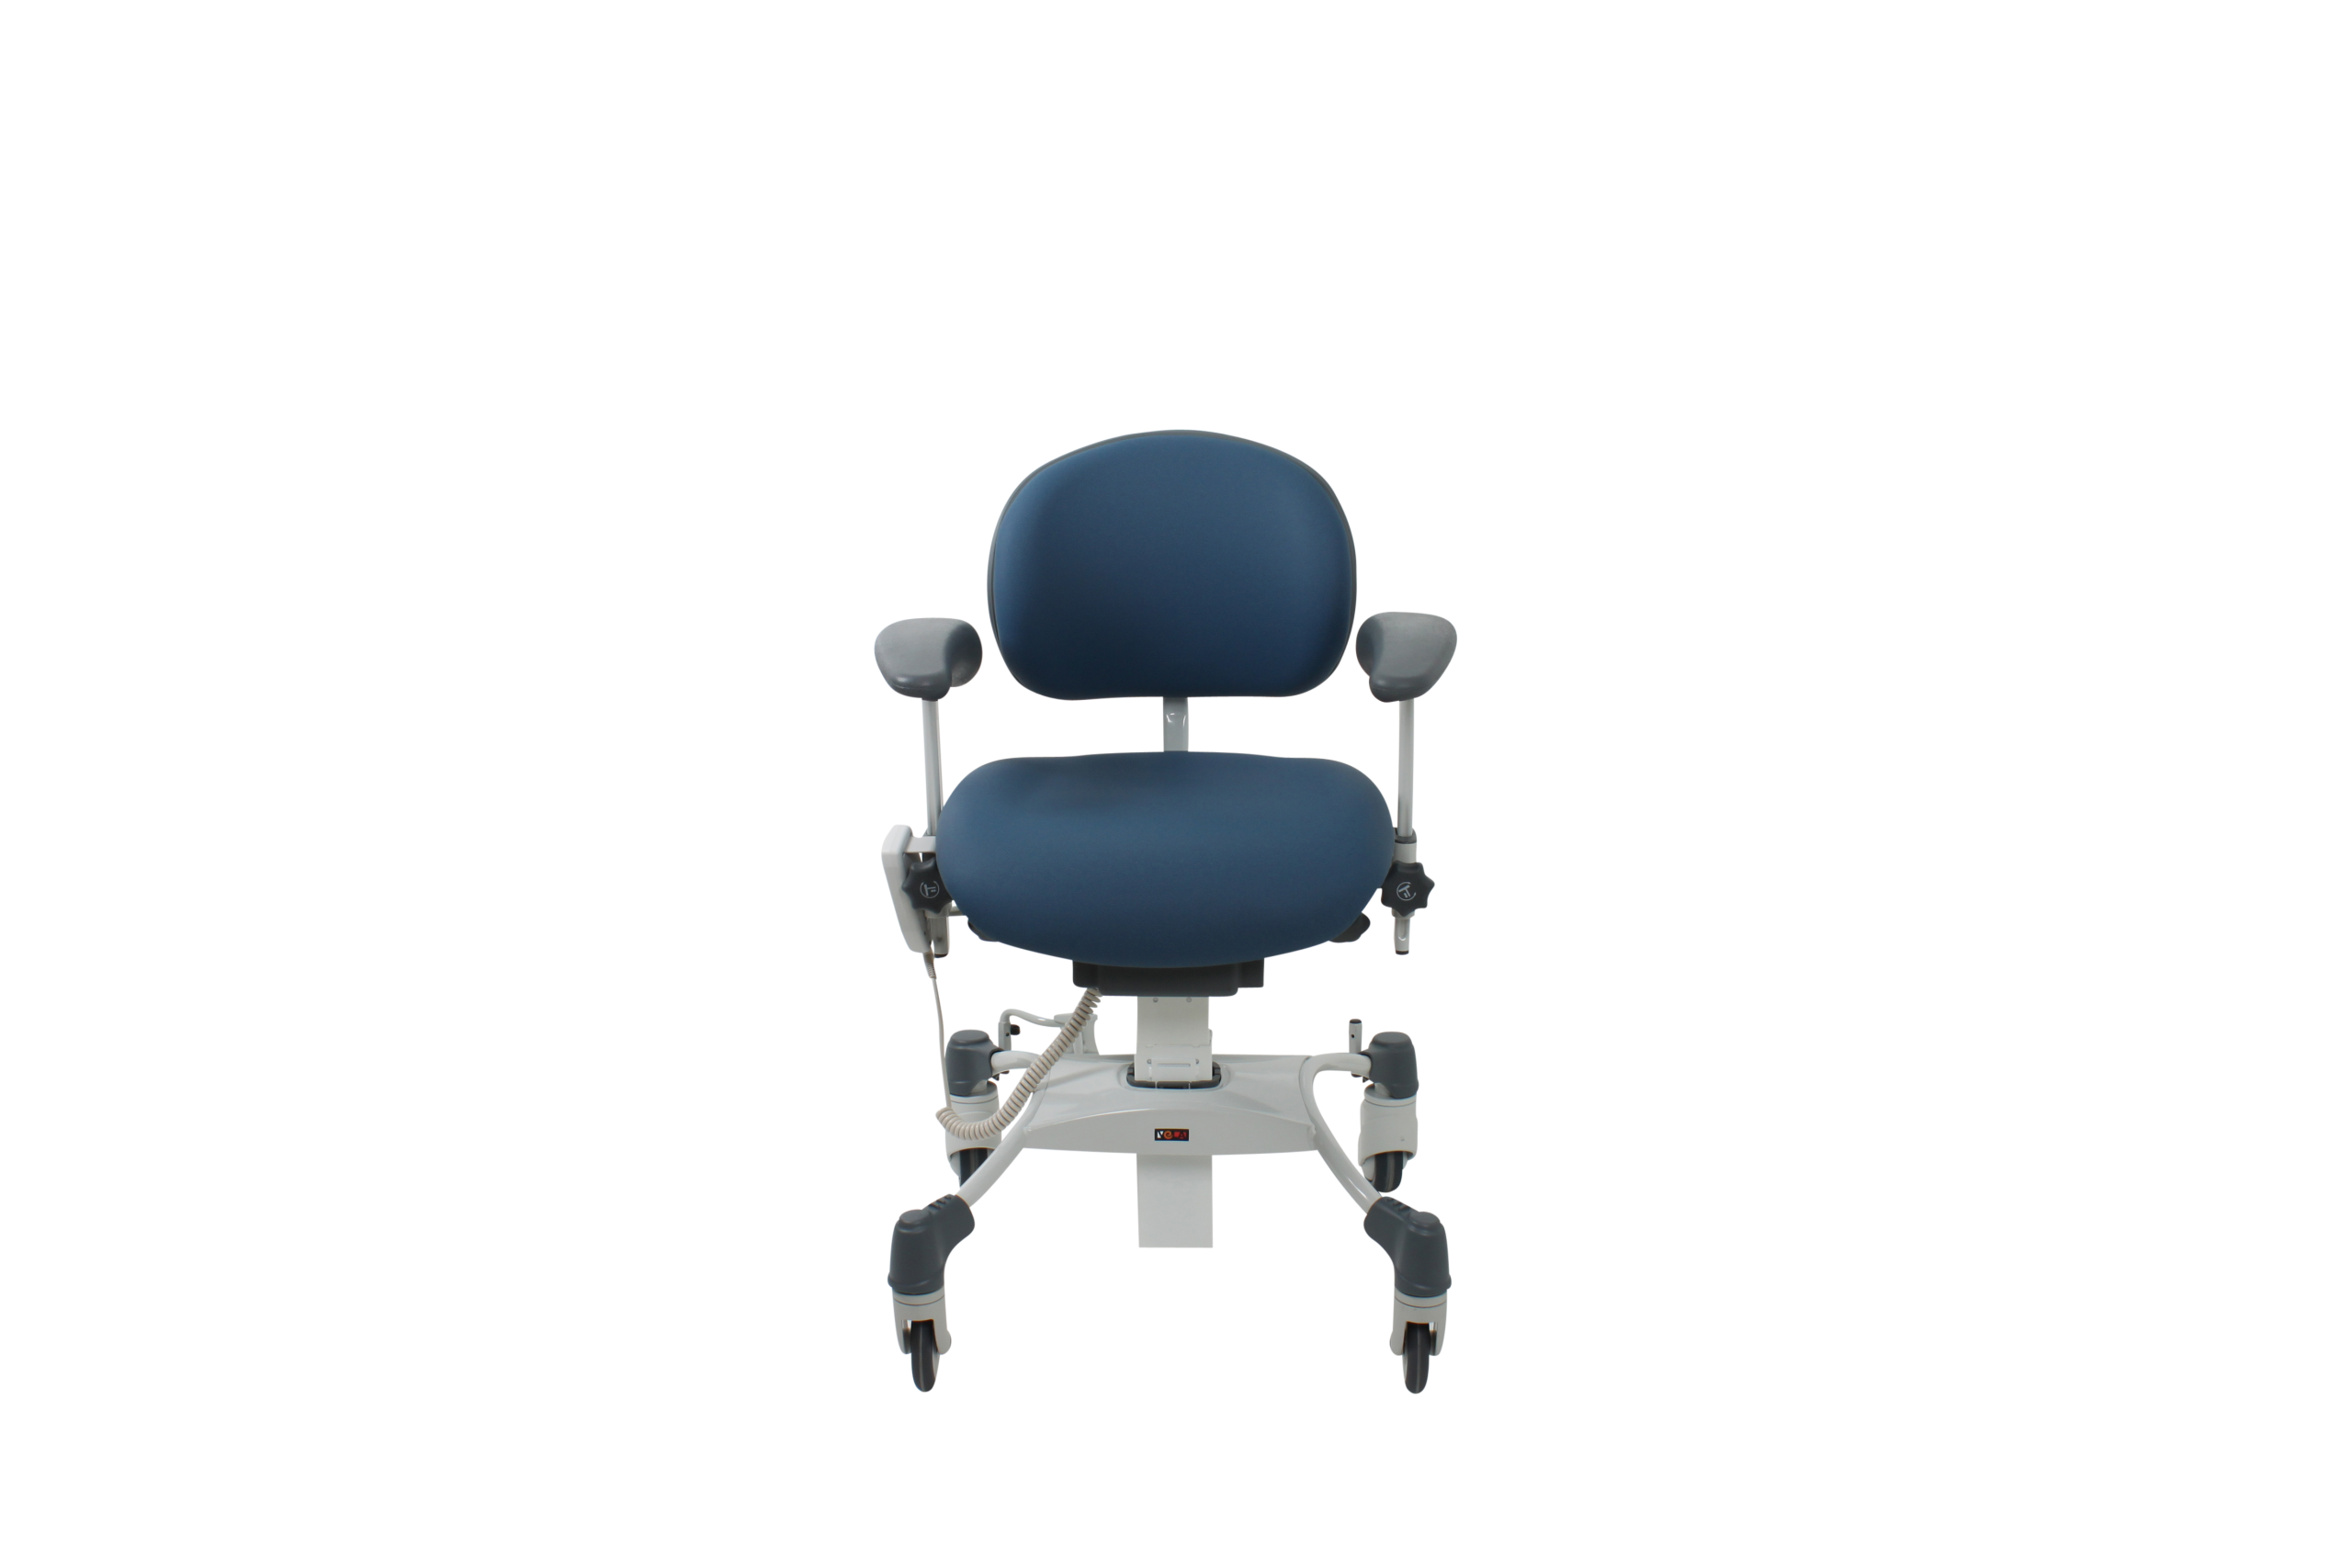 https://www.lameris-group.nl/wp-content/uploads/2020/03/VELA-Basic-Ophtalmology-chair-front2-scaled.png